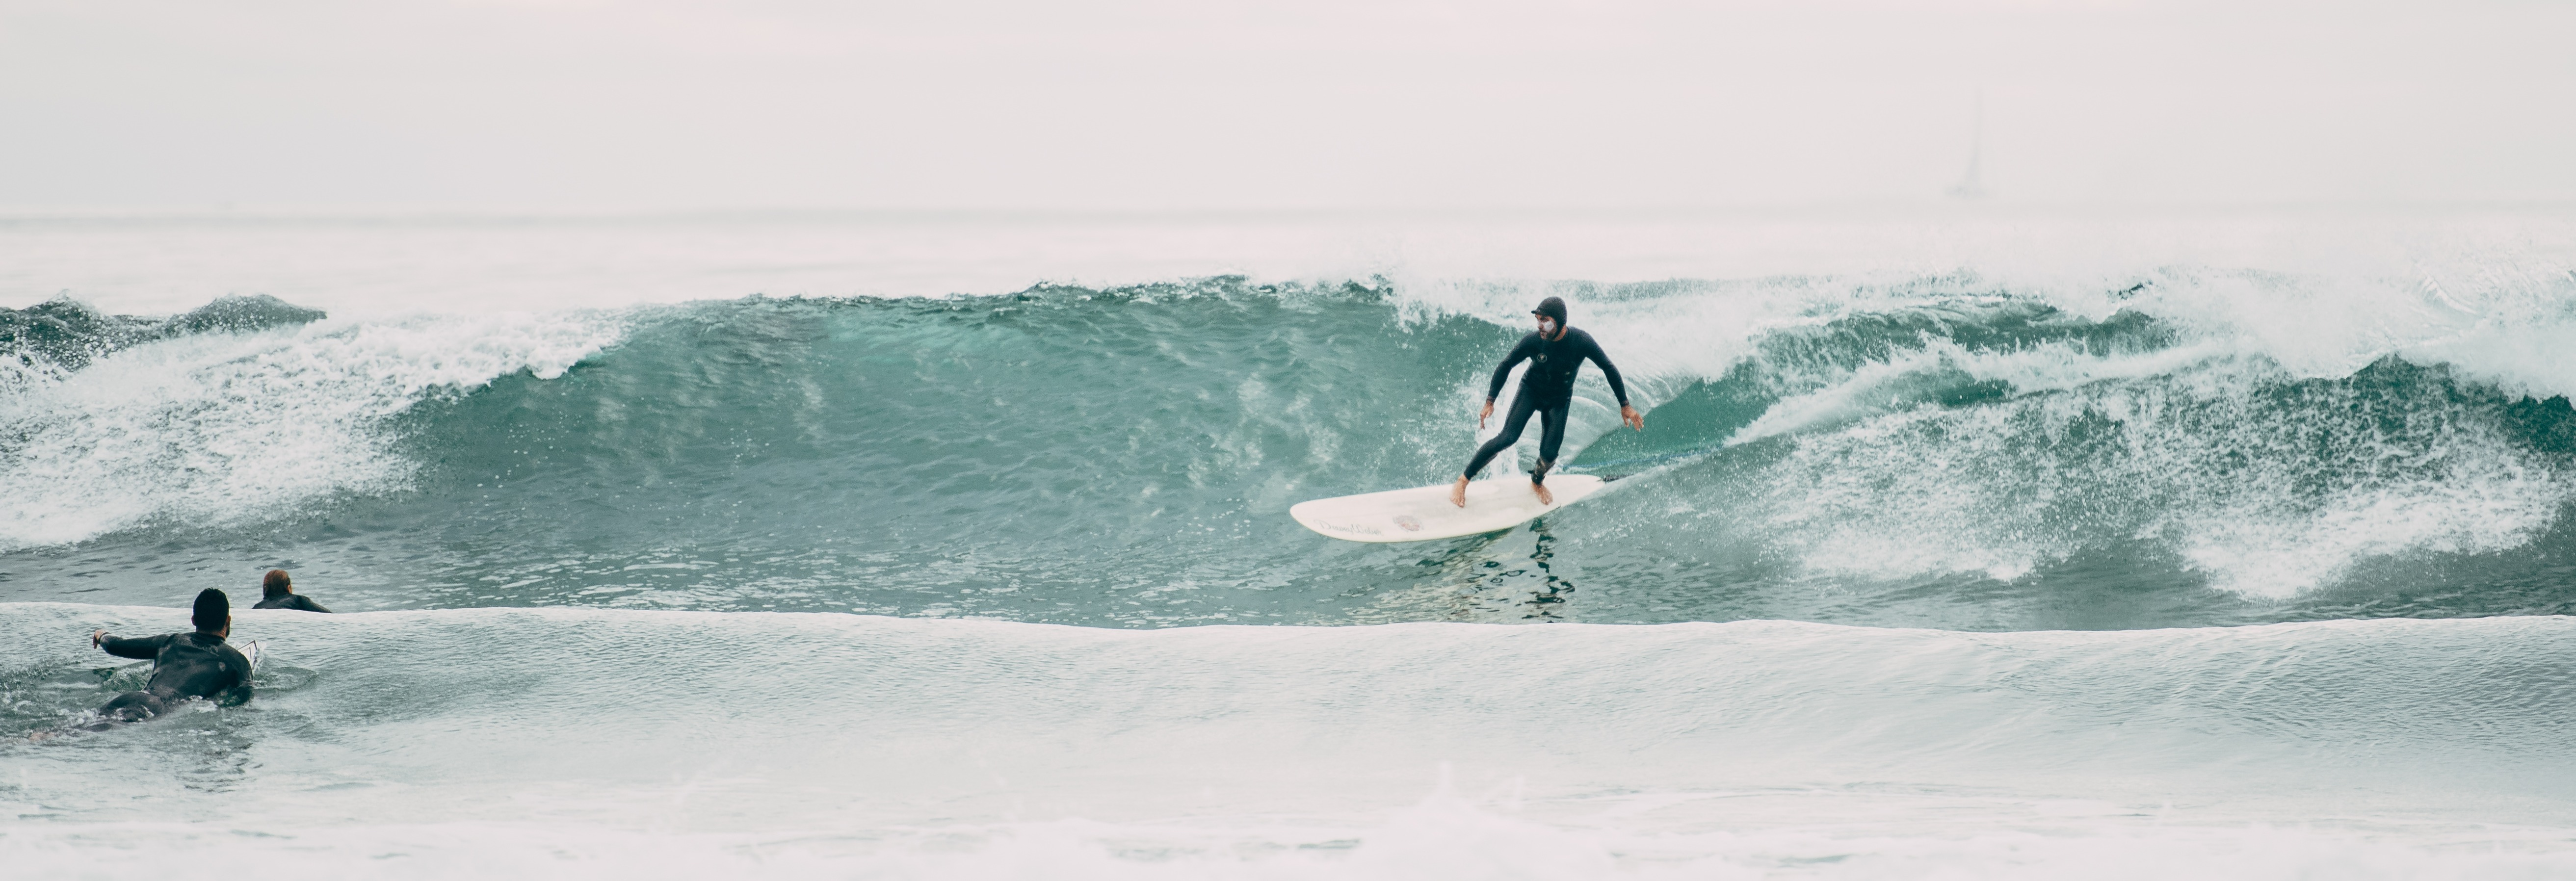 Canva - Person Riding Surfboard on Wave-cropped